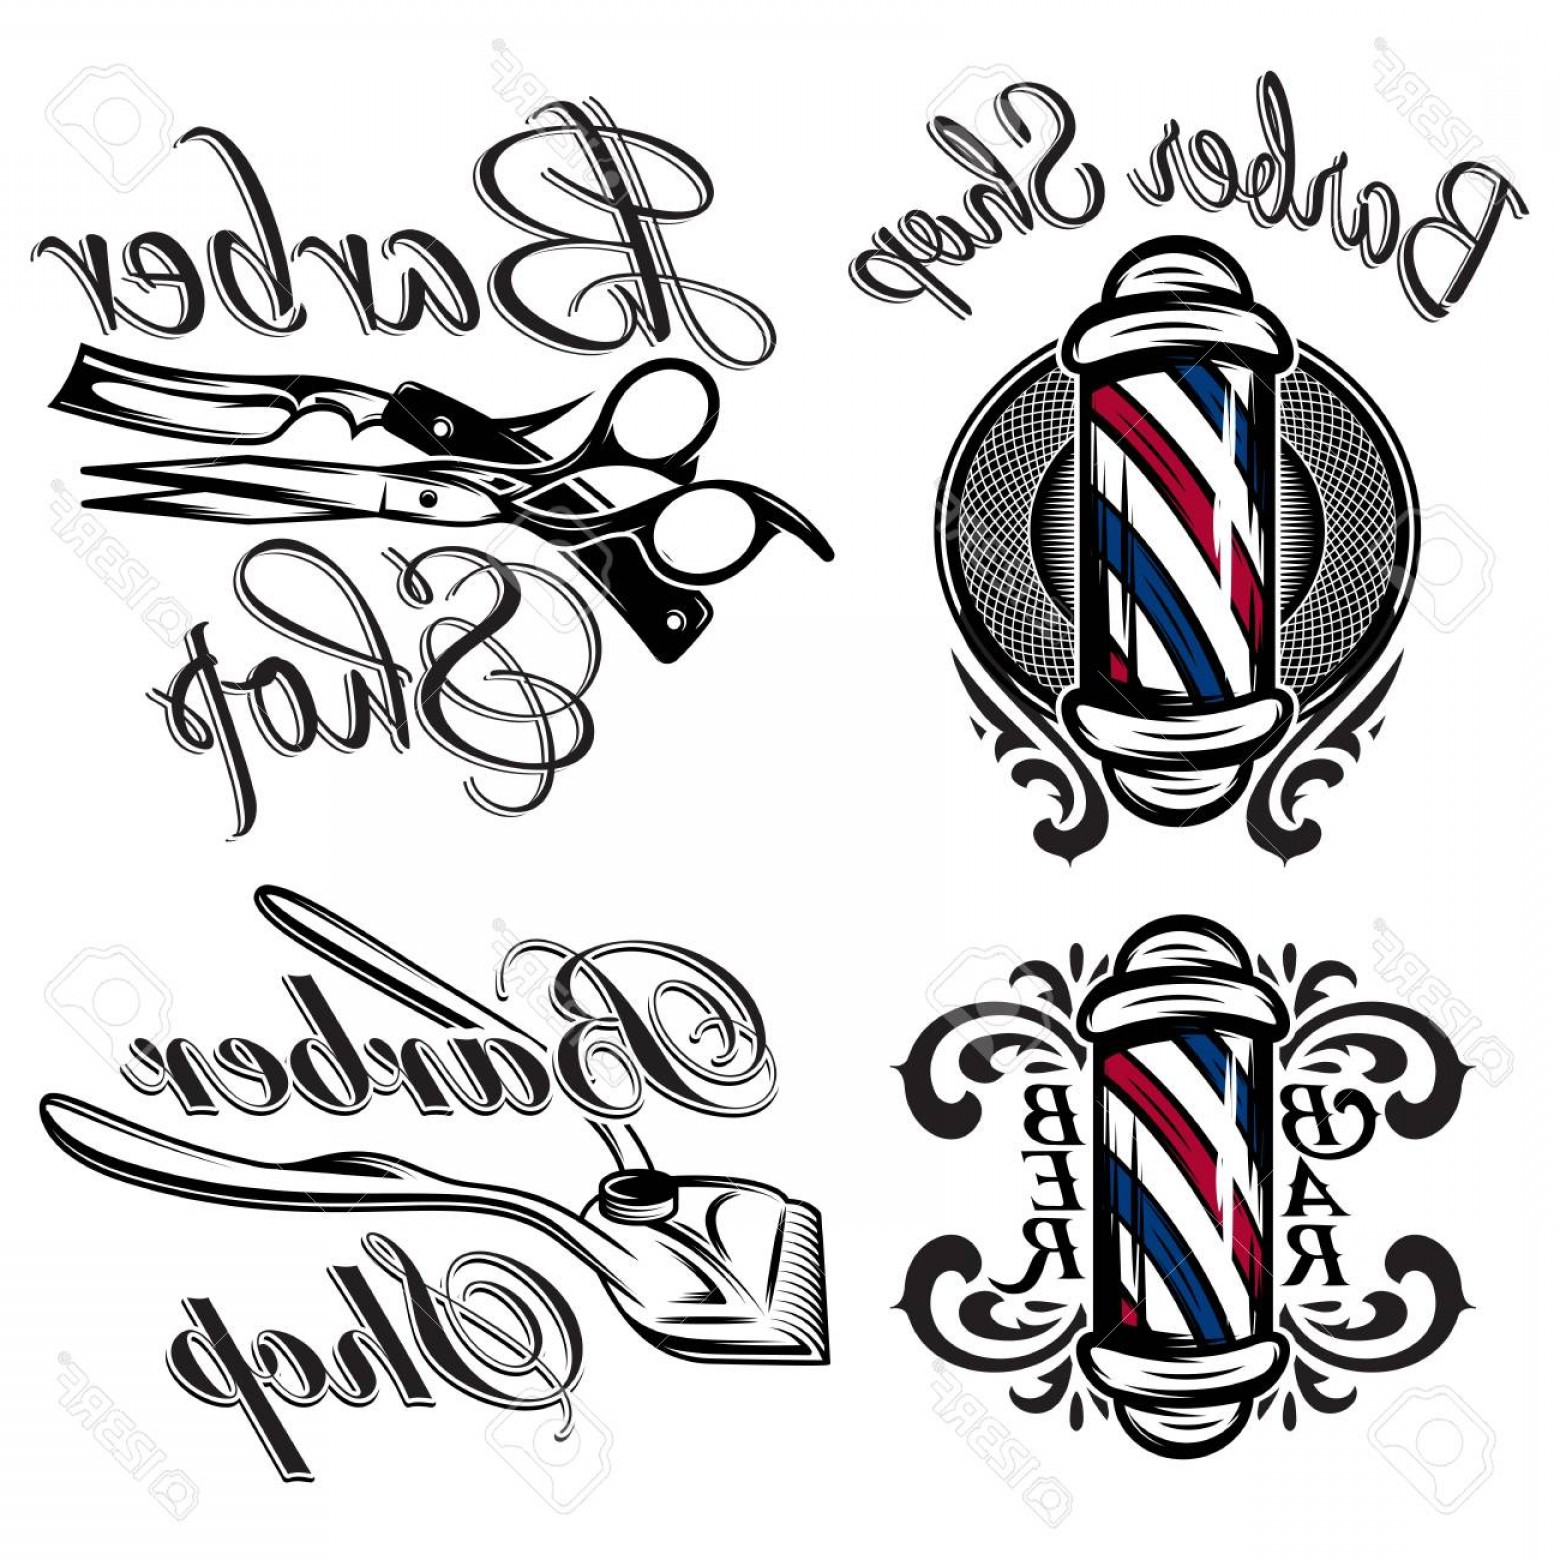 1560x1560 Barber Shop Vector Art Arenawp